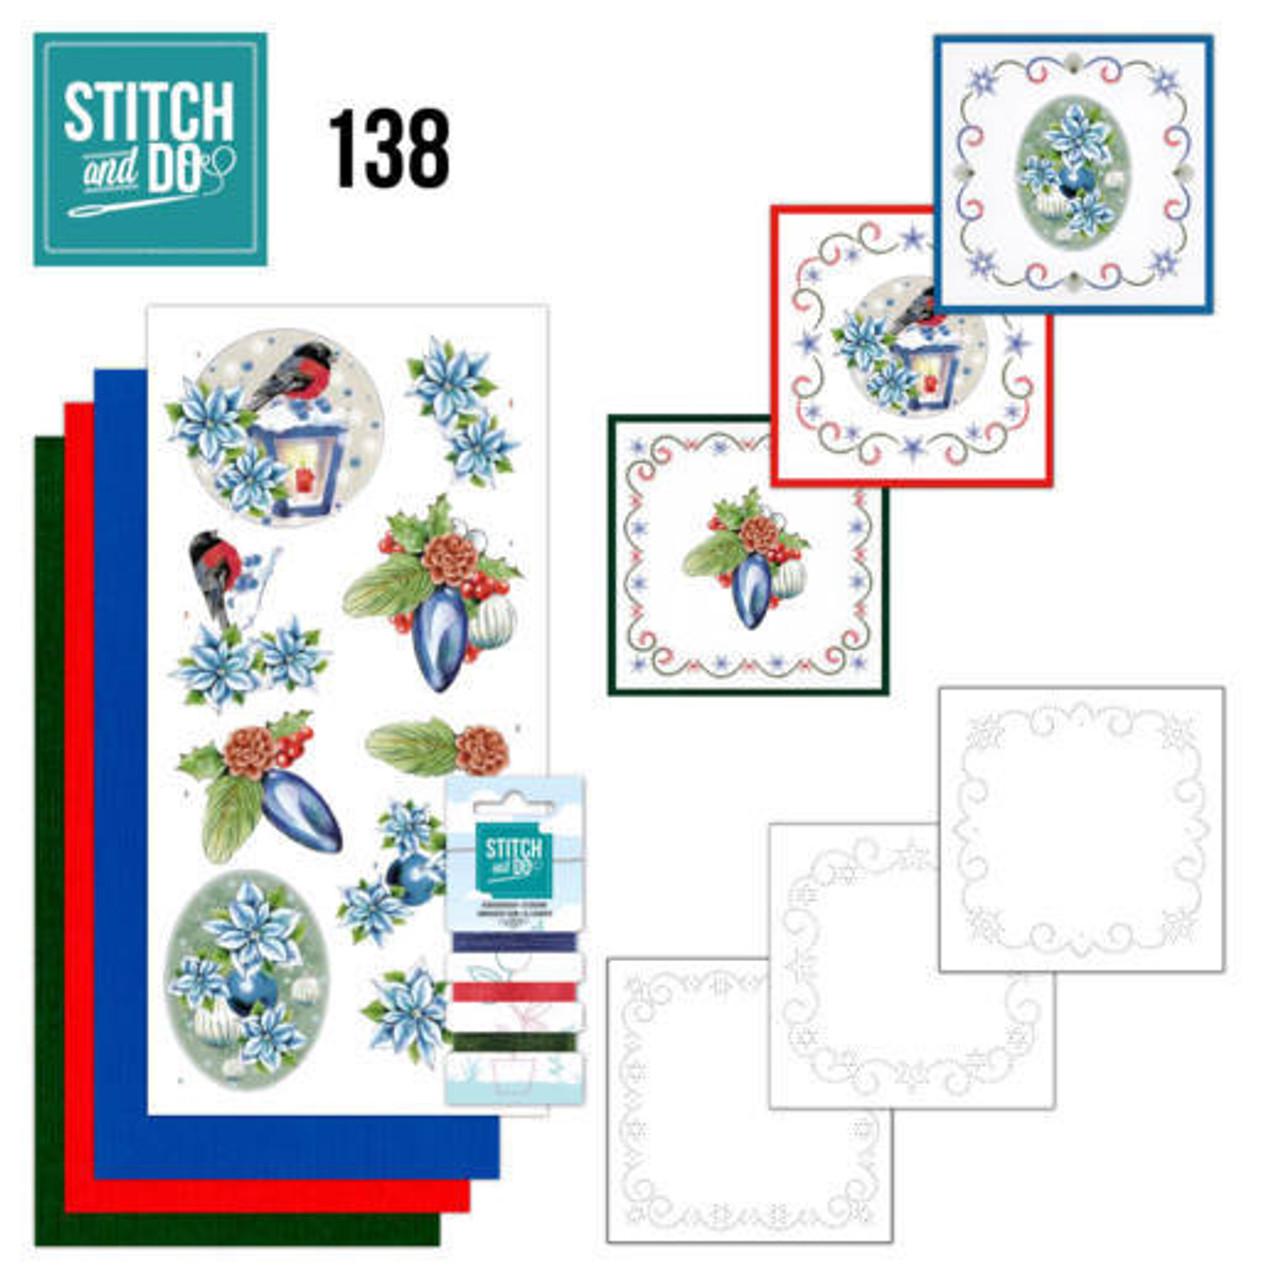 Stitch and Do 138 - Card Embroidery Kit - Christmas Flowers/Lantern